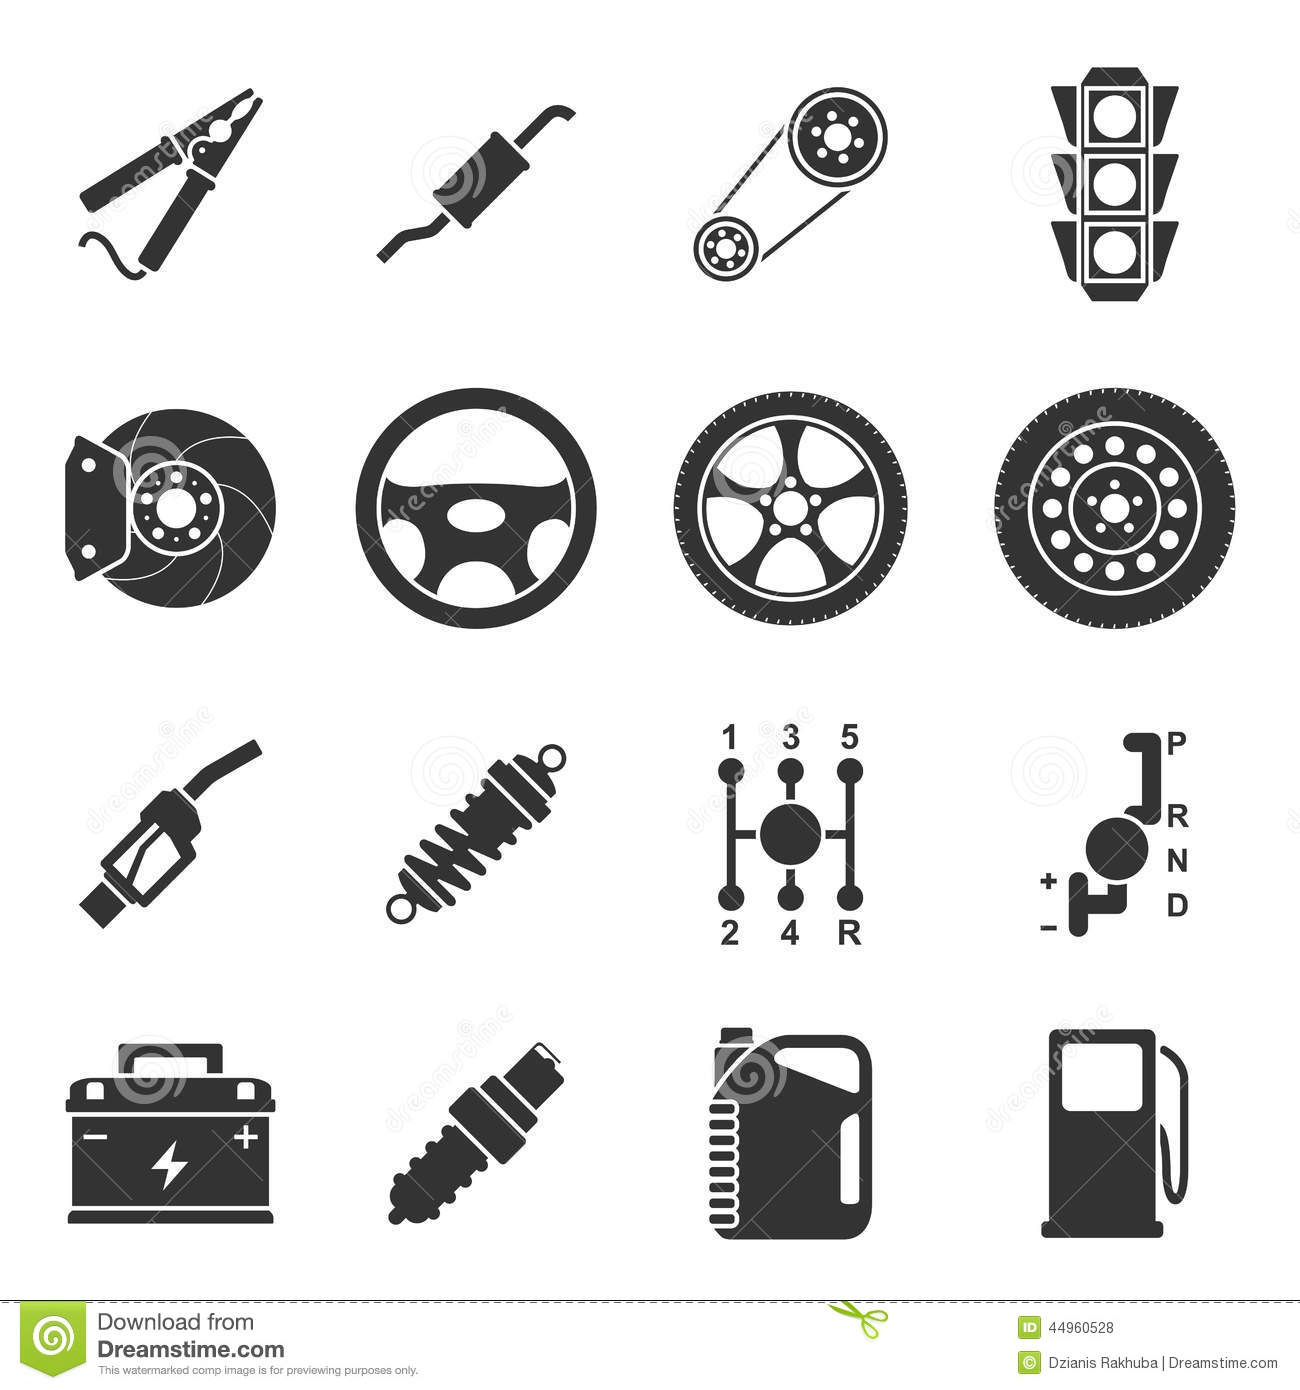 Black and White Car Parts